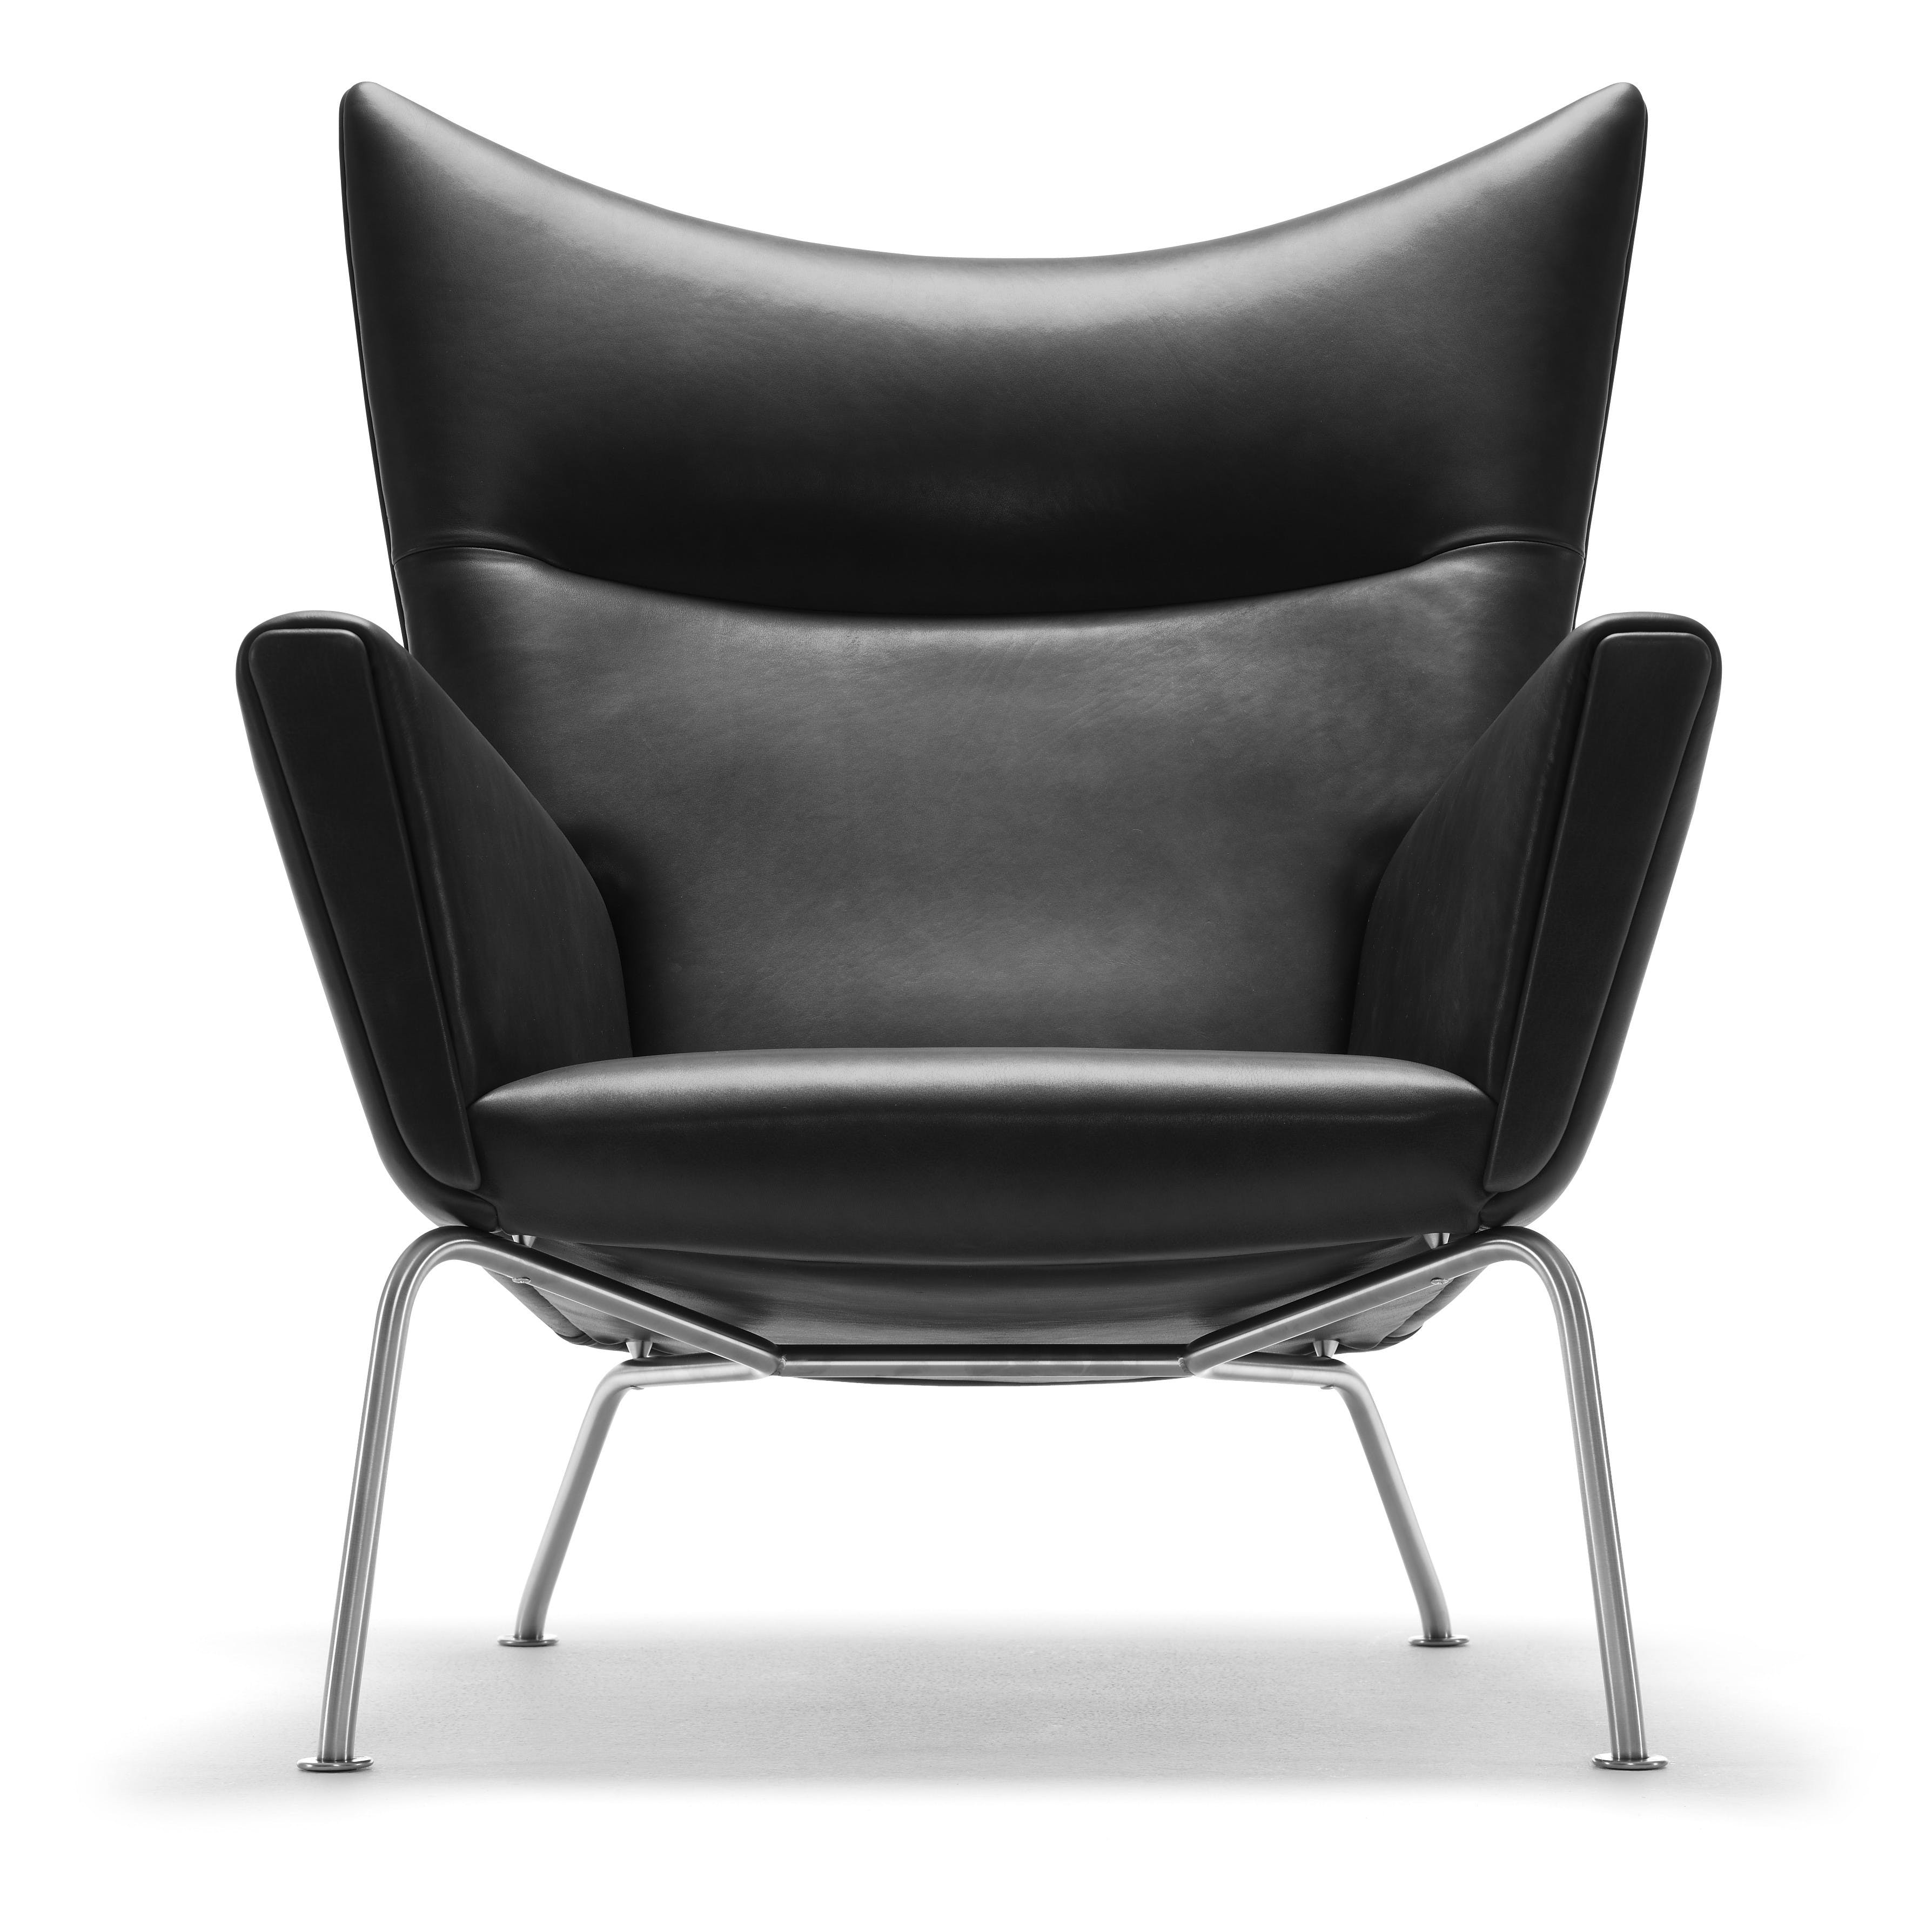 Carl-hansen-son-black-ch445-haute-living